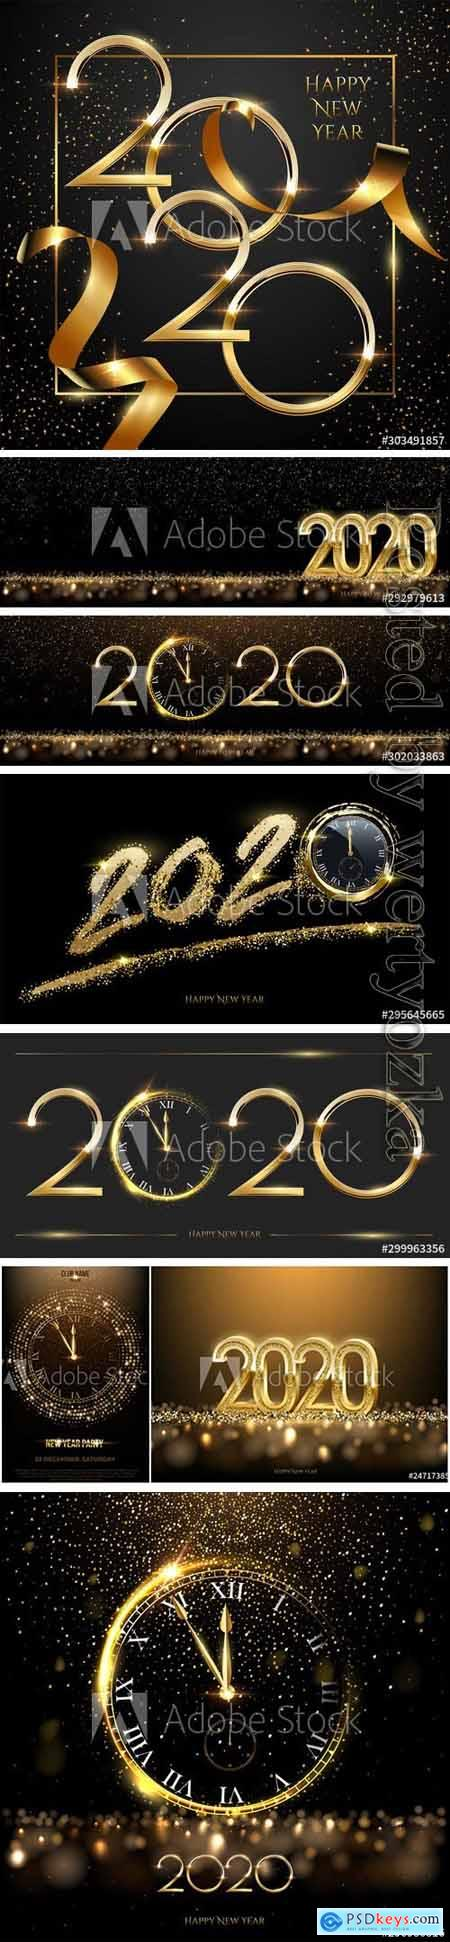 Golden 2020 Happy new year greeting card vector template